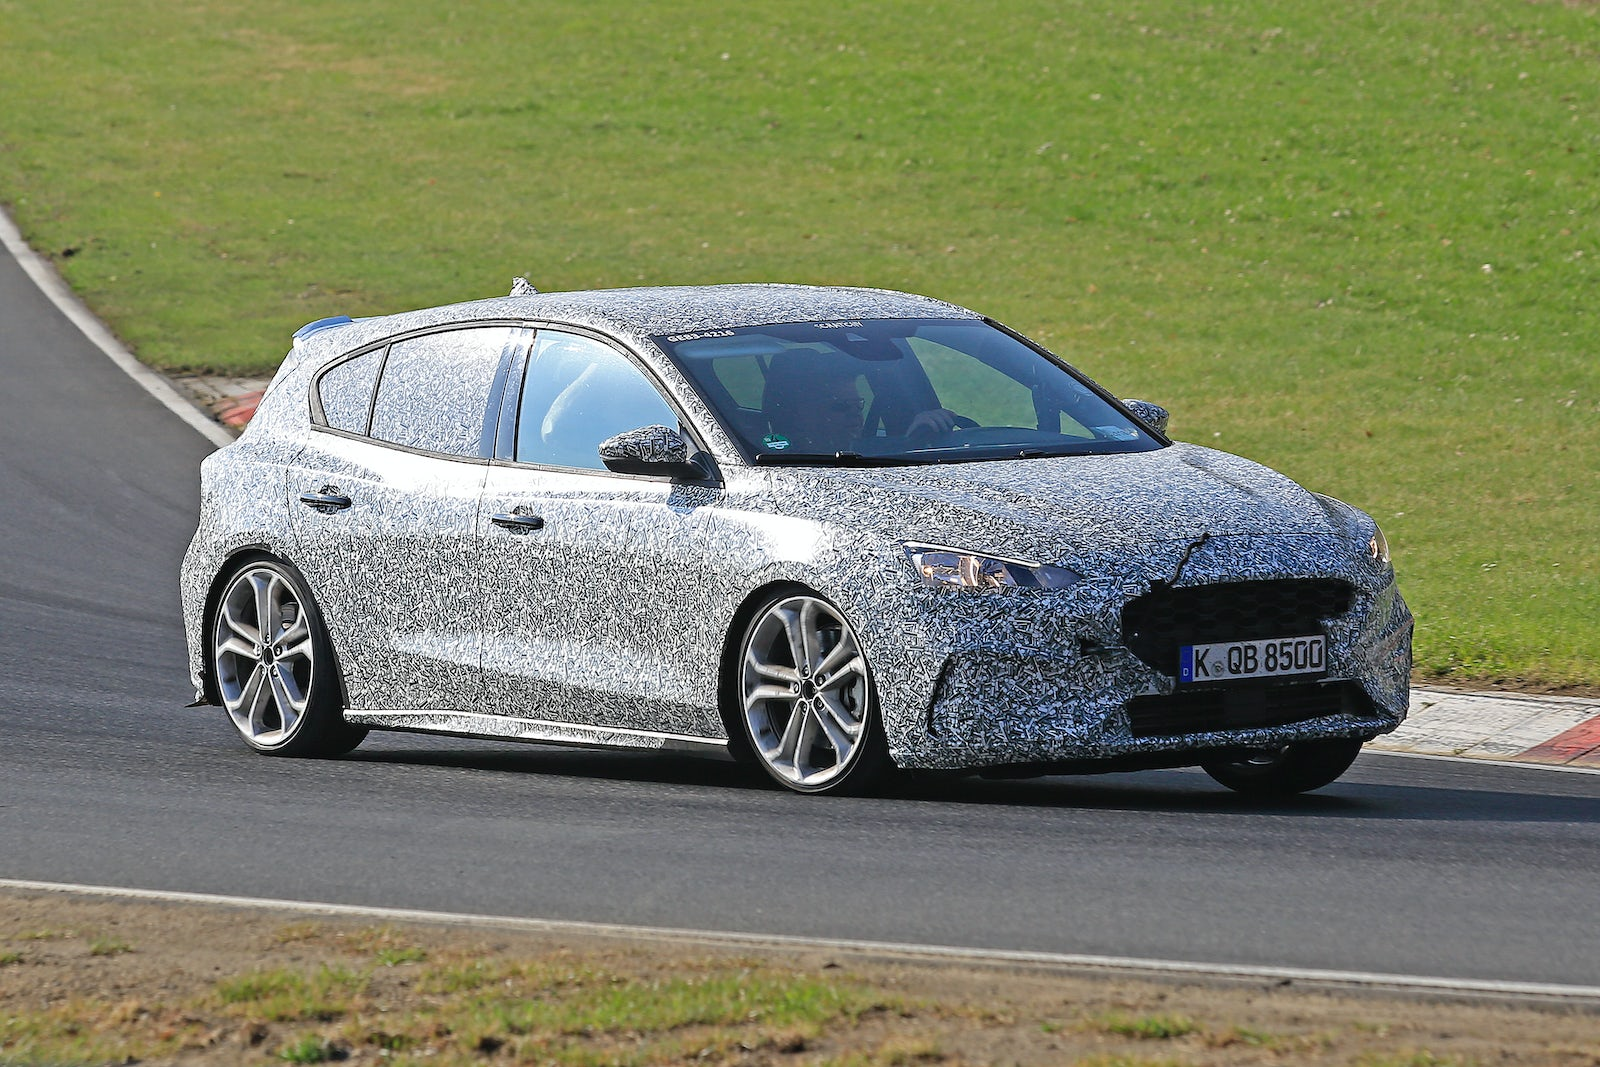 2019 Ford Focus ST price, specs,release date | carwow